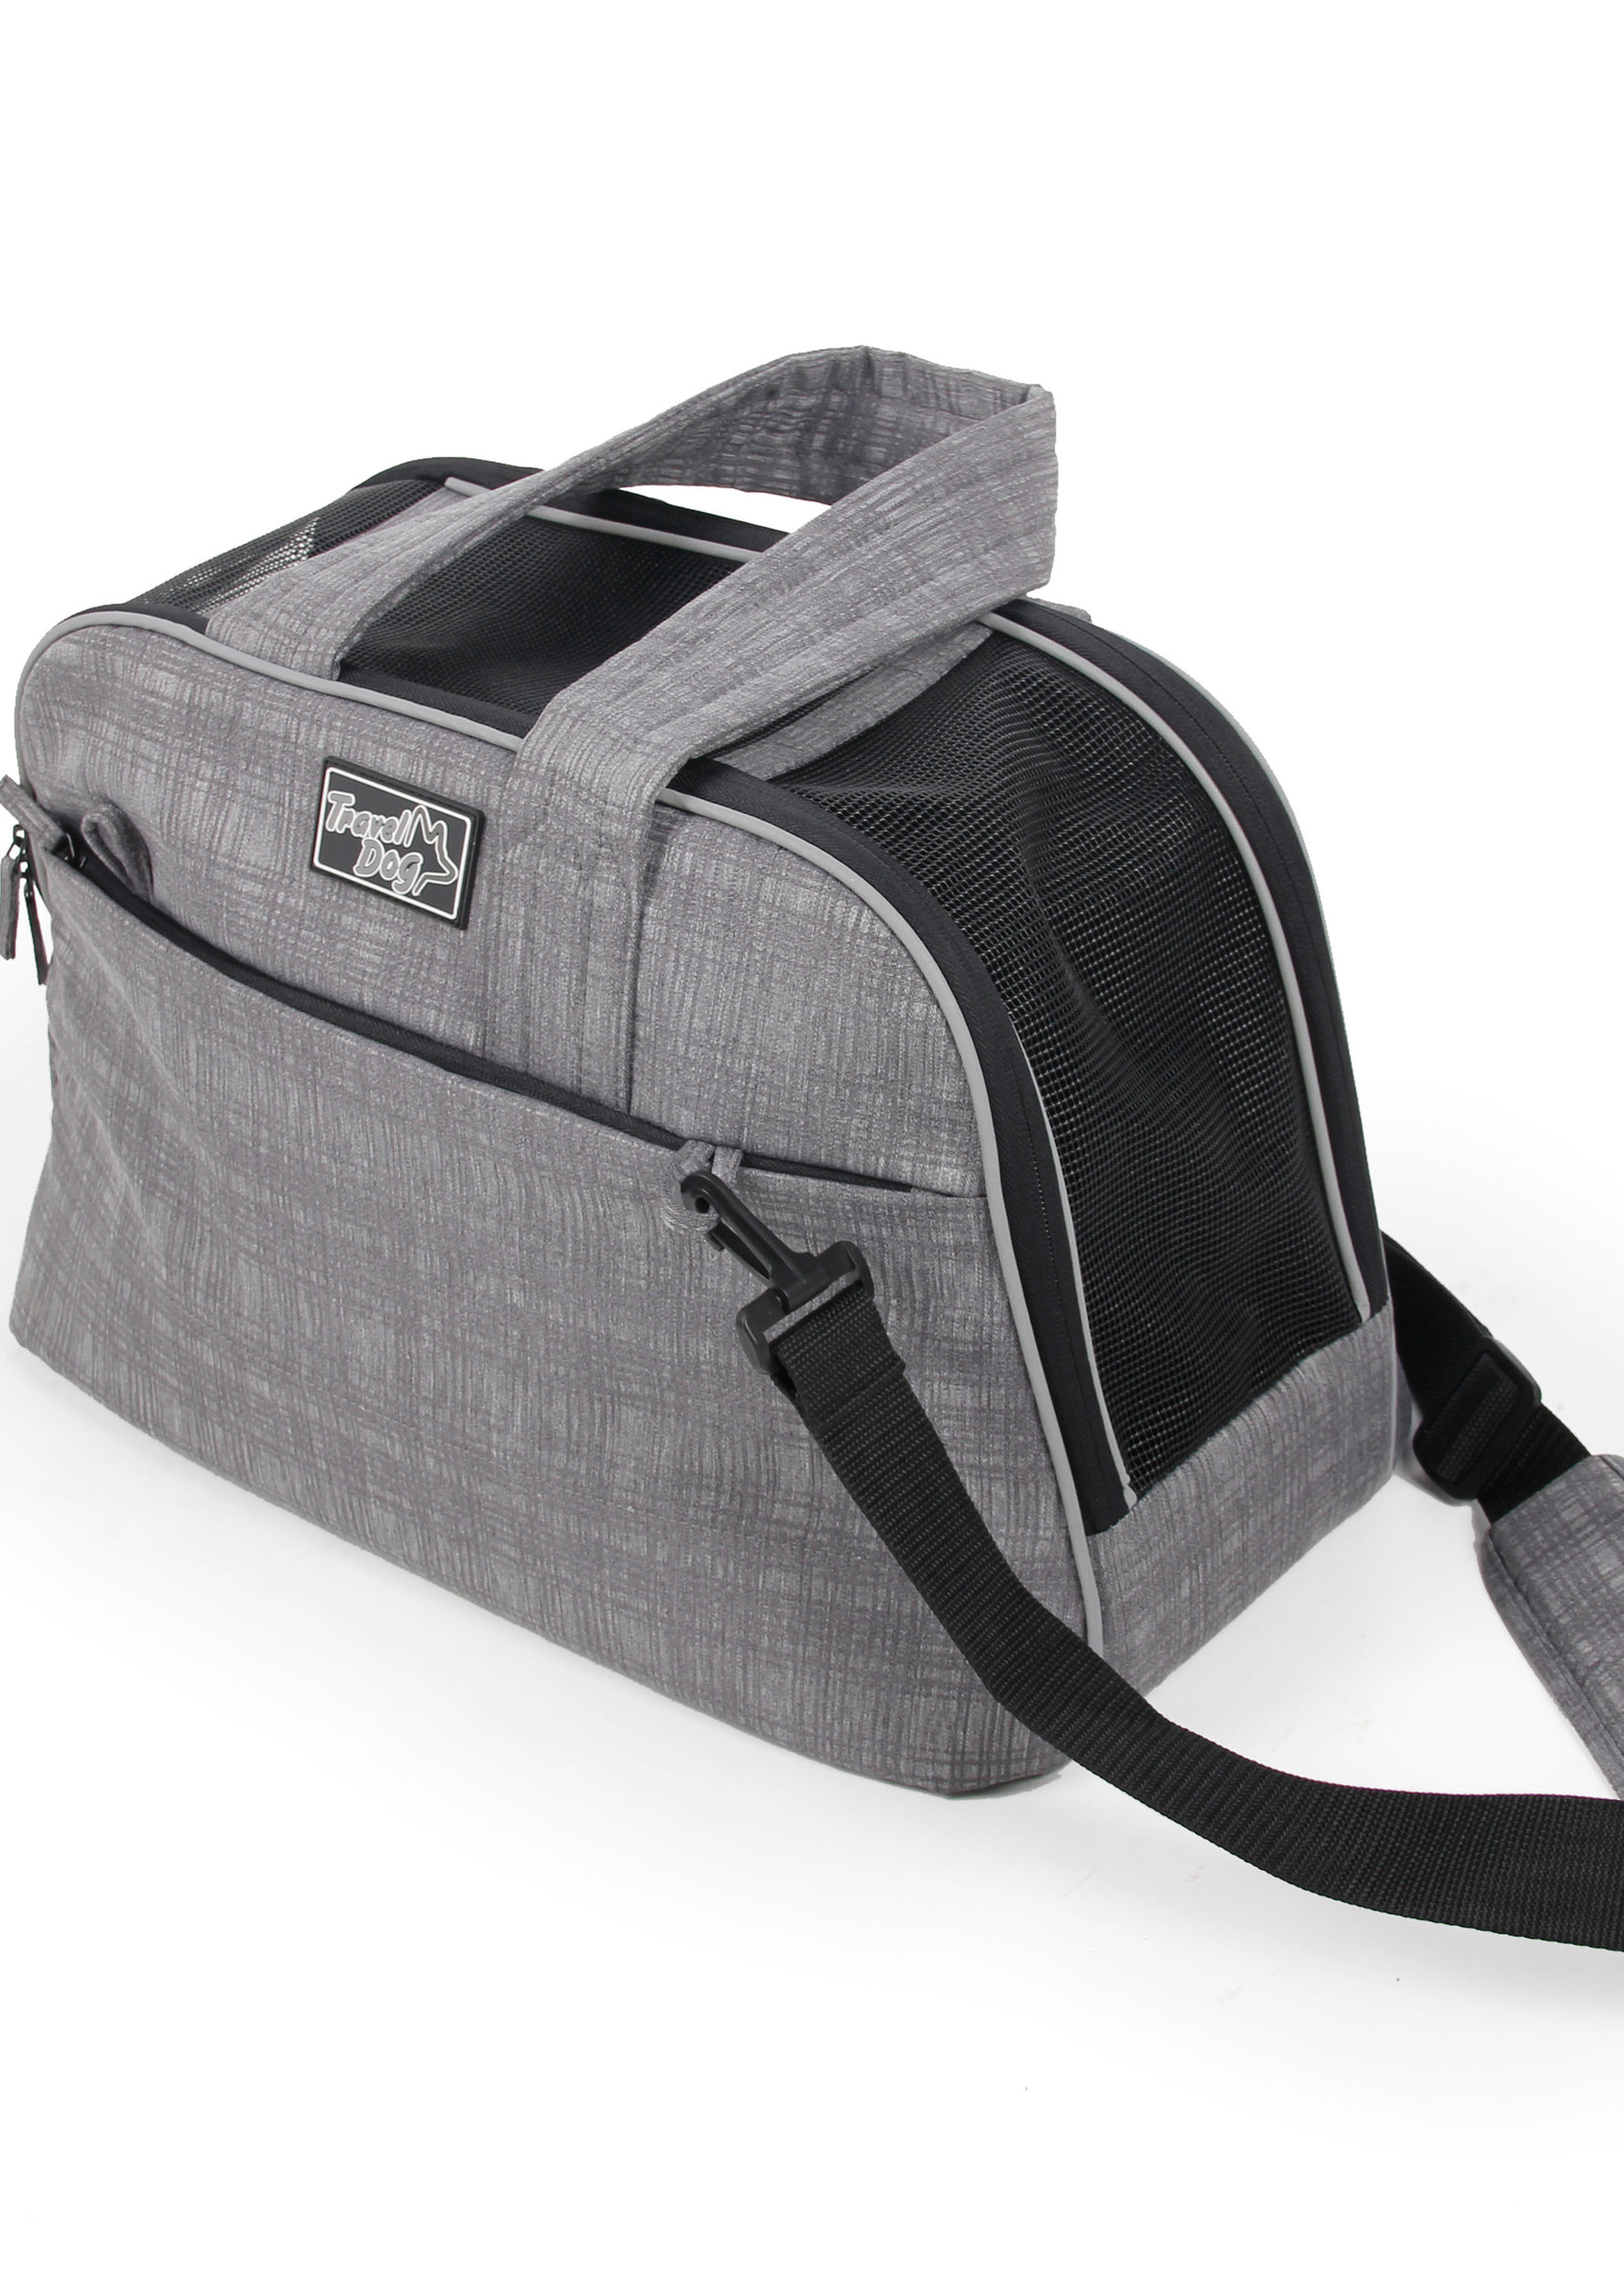 All for Paws® AFP Travel Dog Carrying Bag